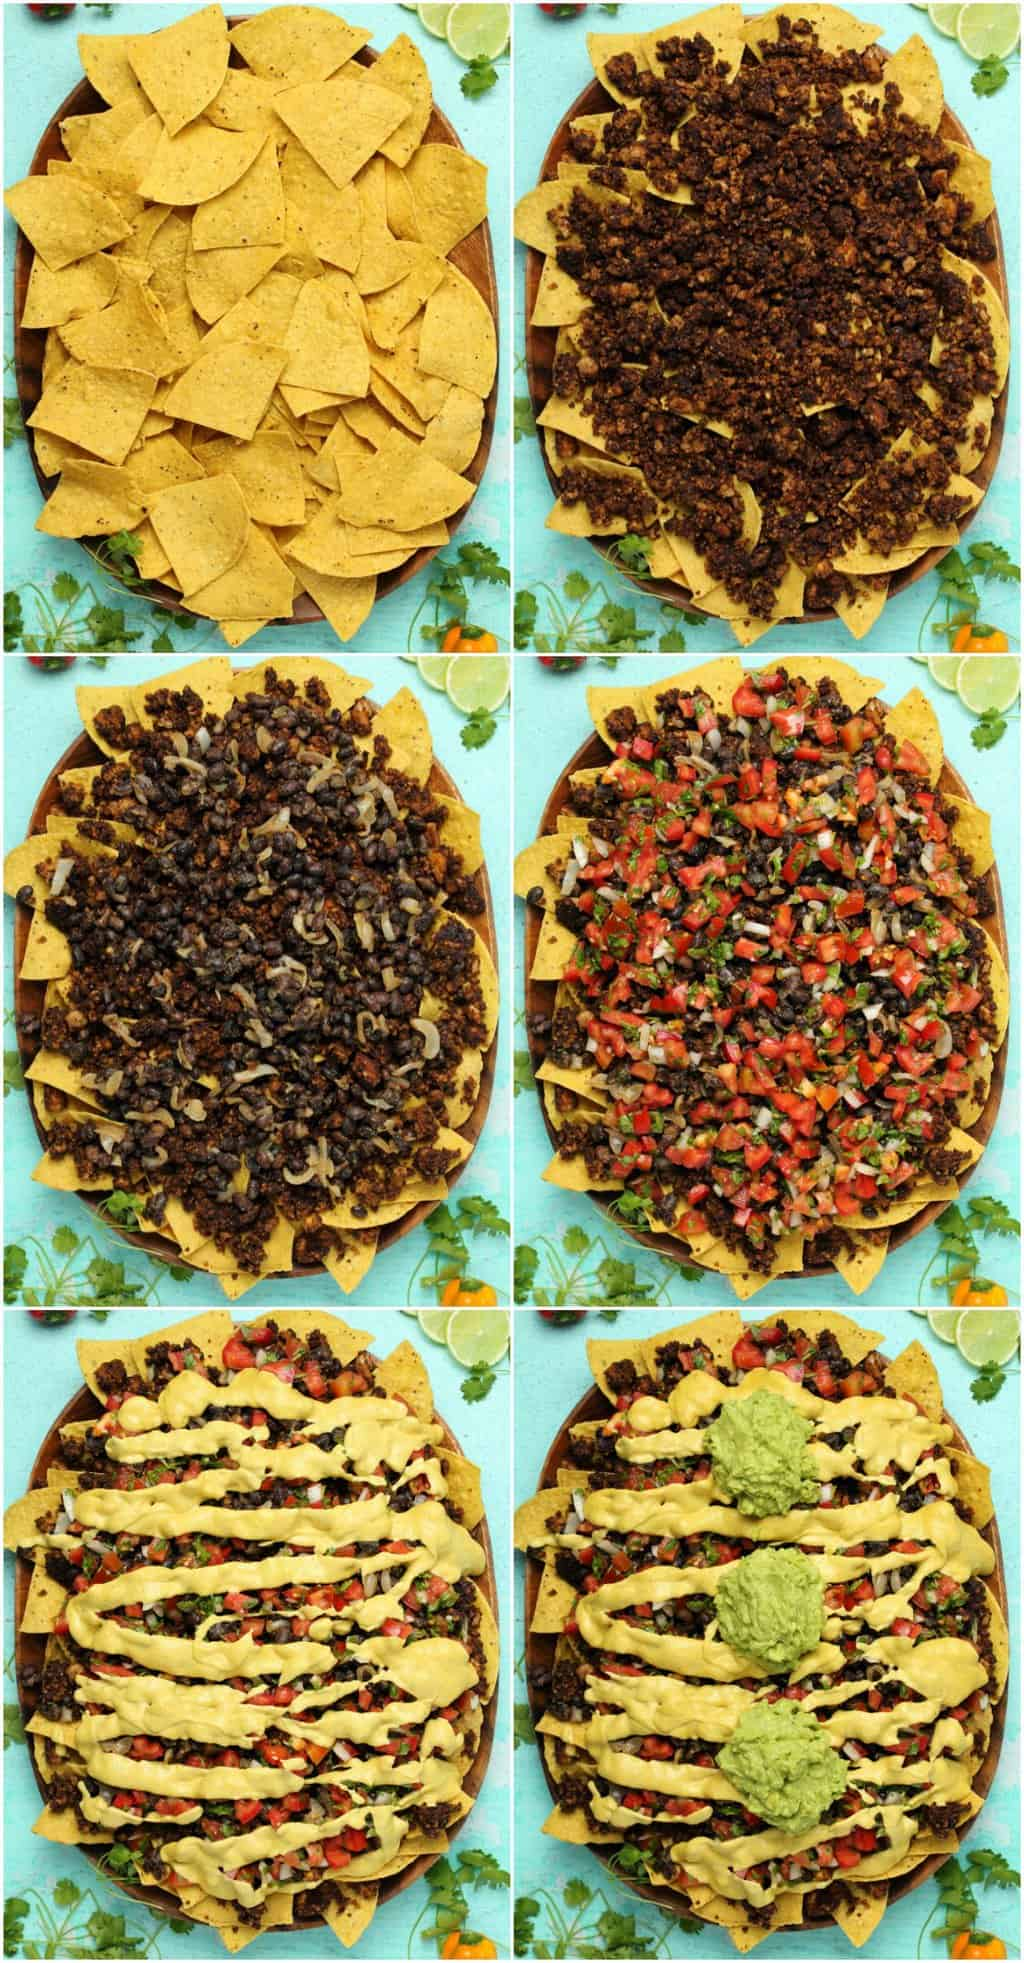 Step by step process photo collage of making vegan nachos.